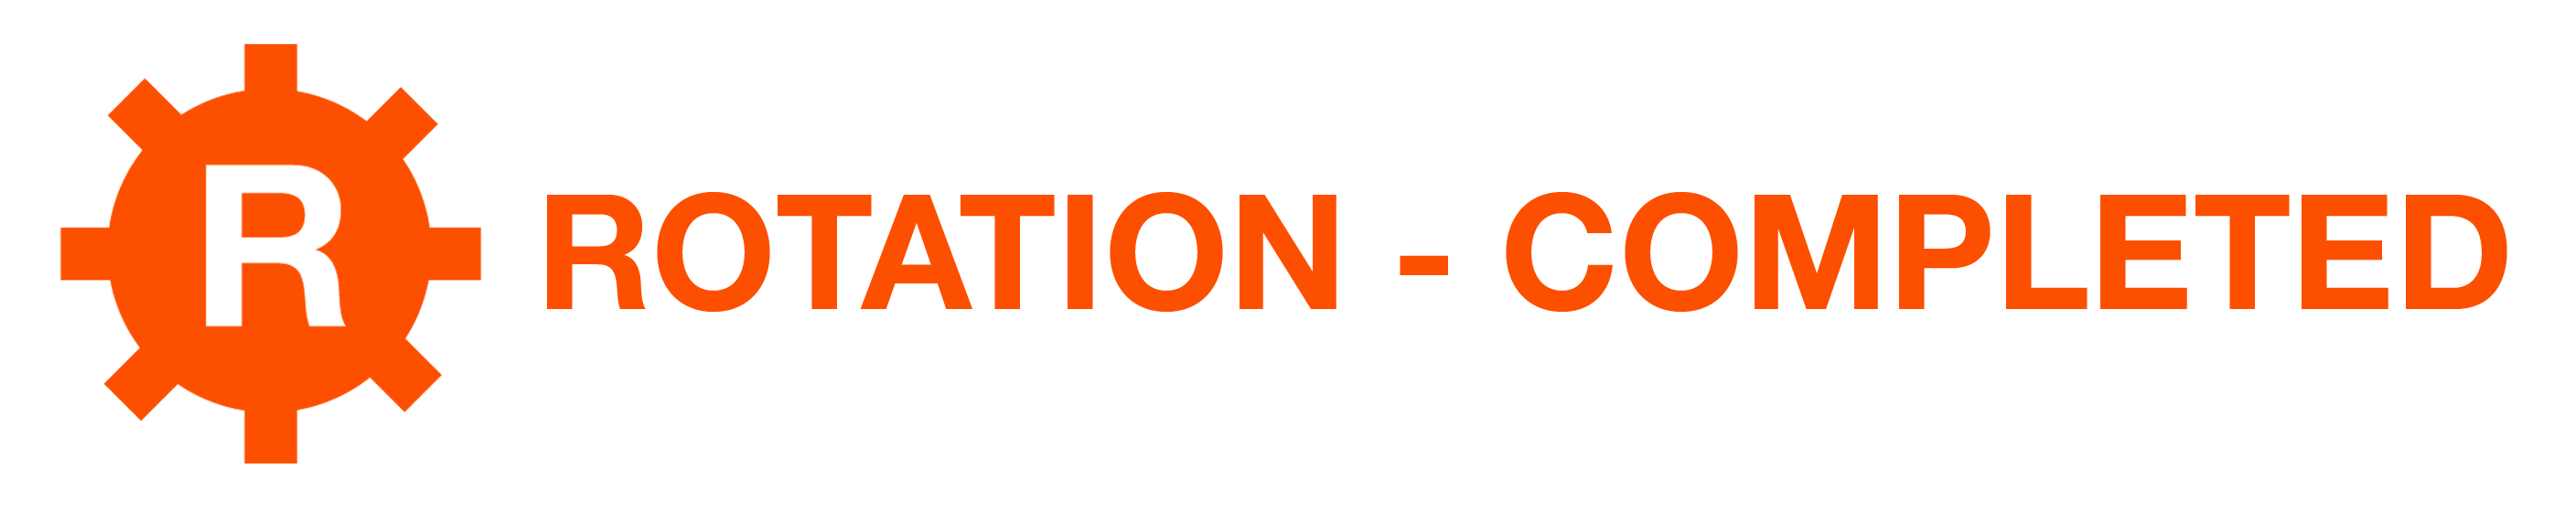 rotation completed - orange.png